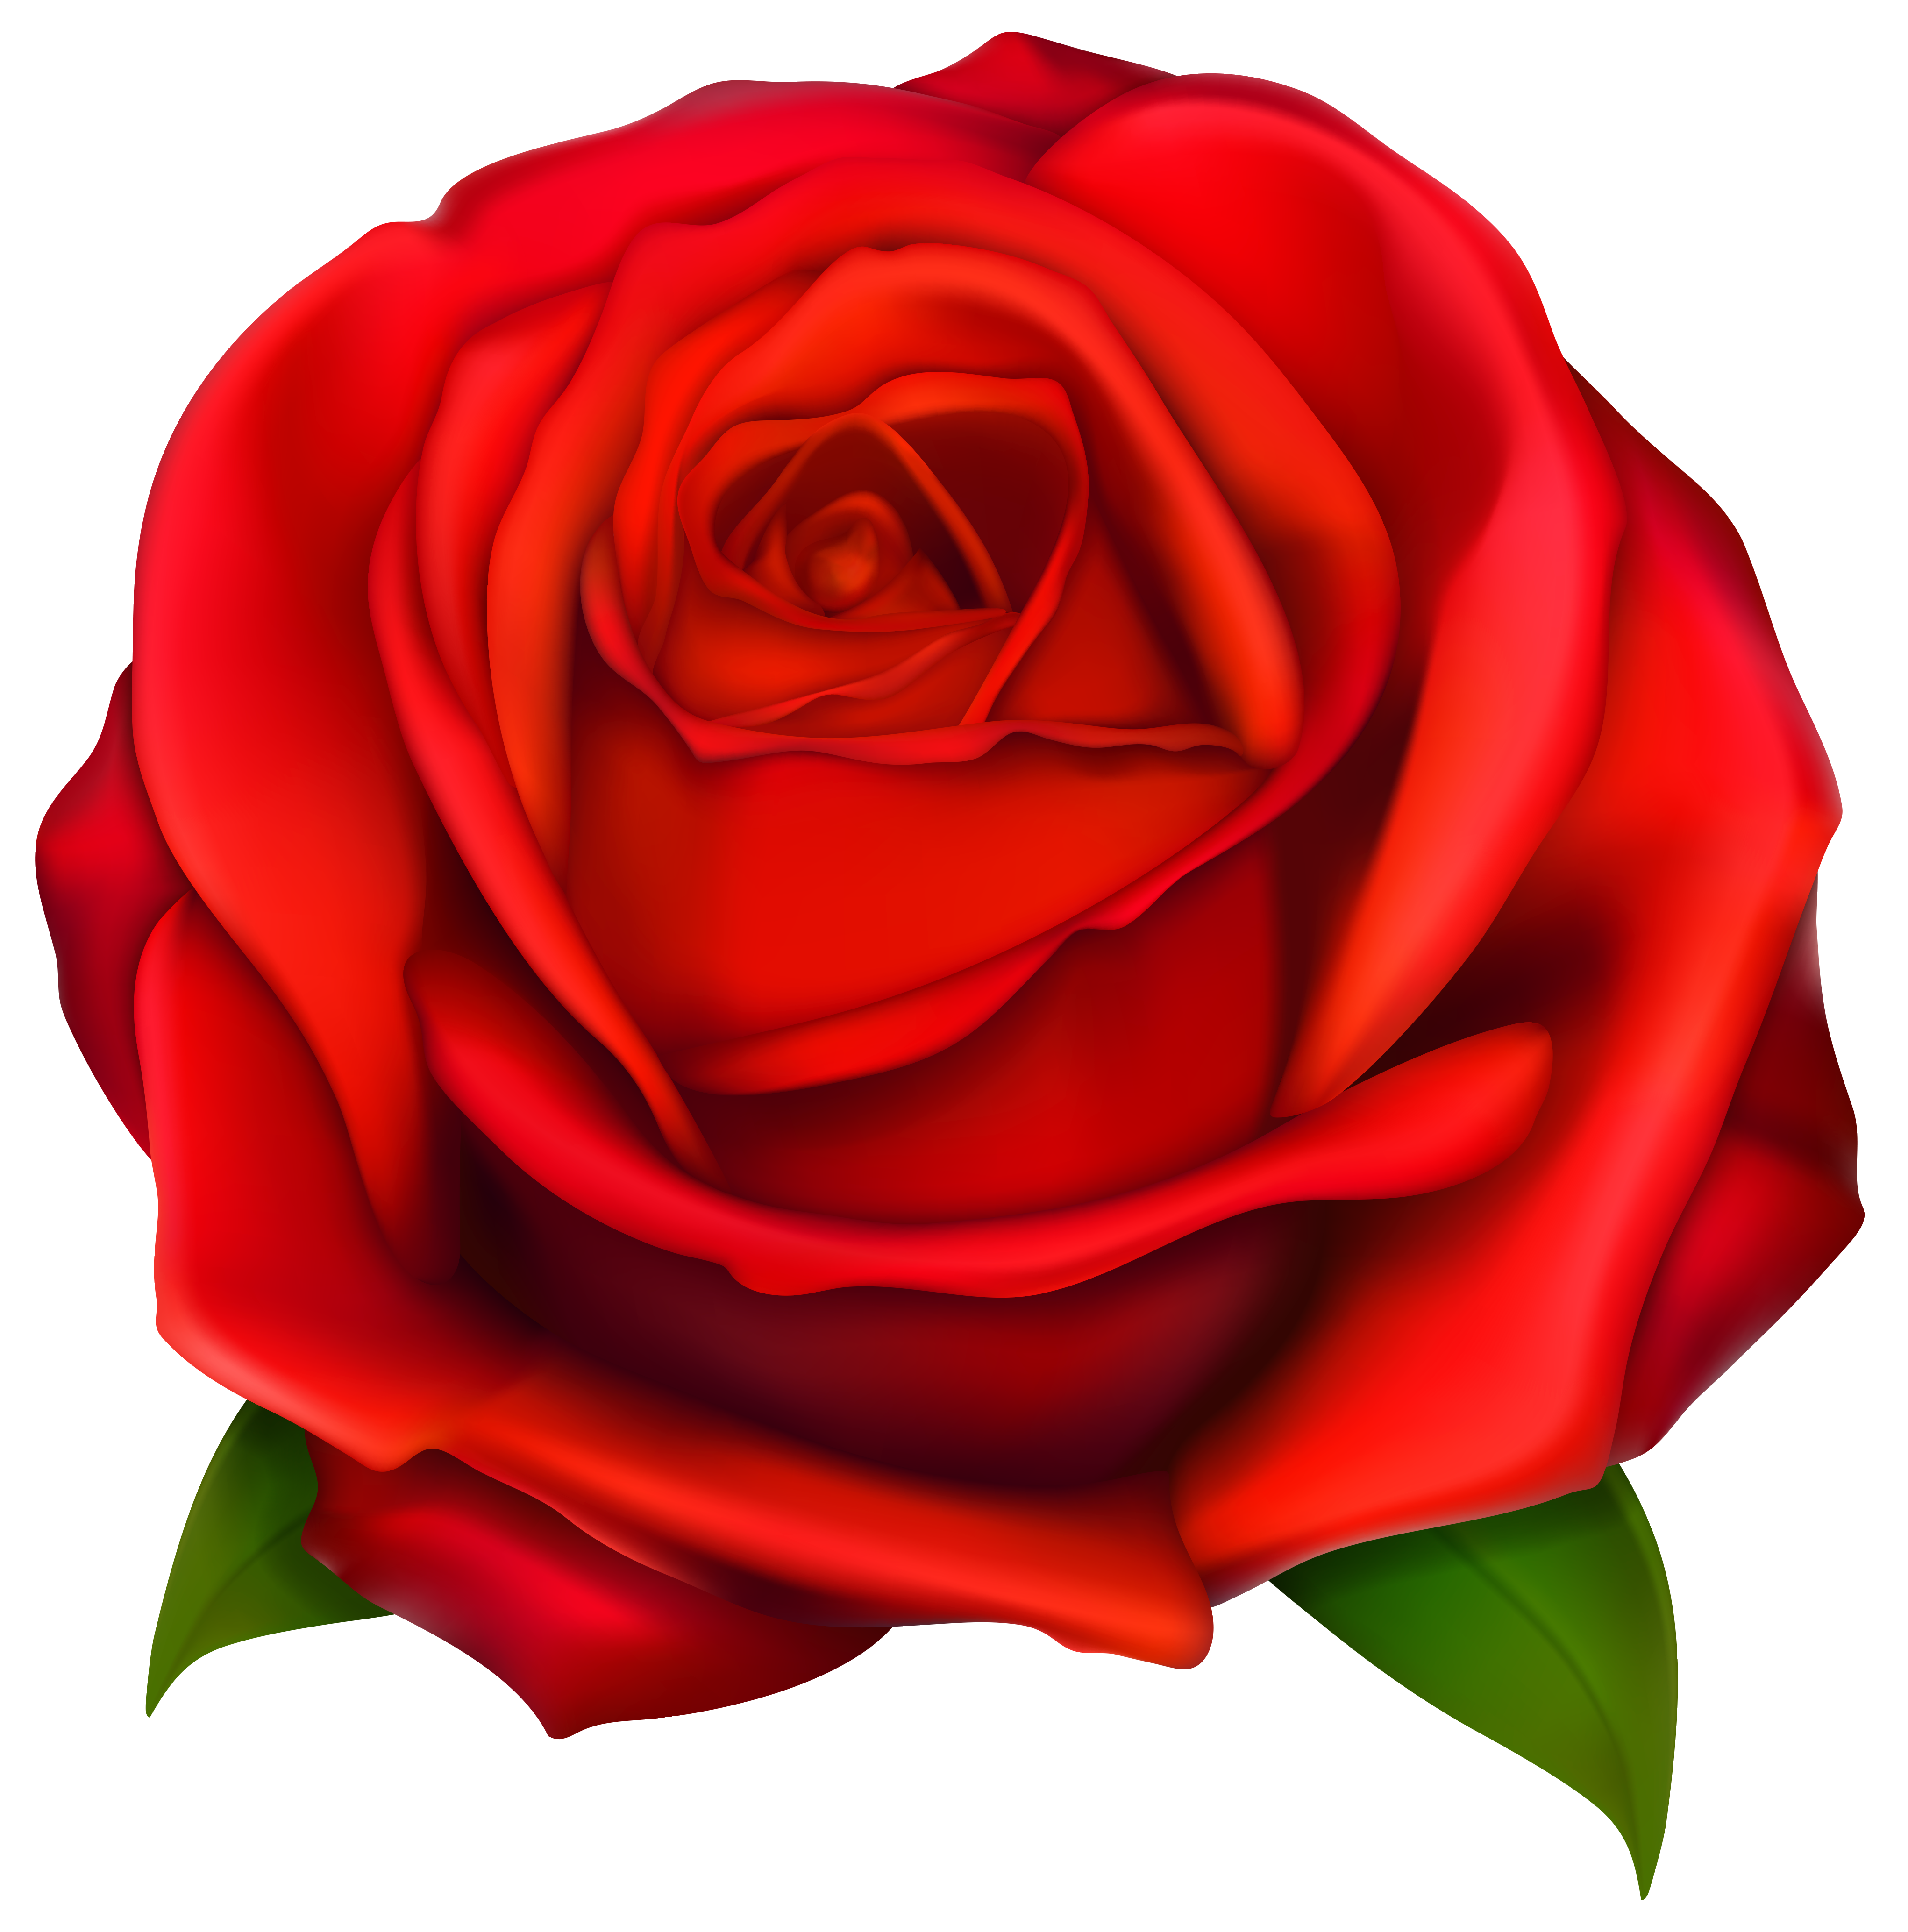 Rose clipart image graphic free download Image of clip art red rose 2 red roses clip art images free | class ... graphic free download